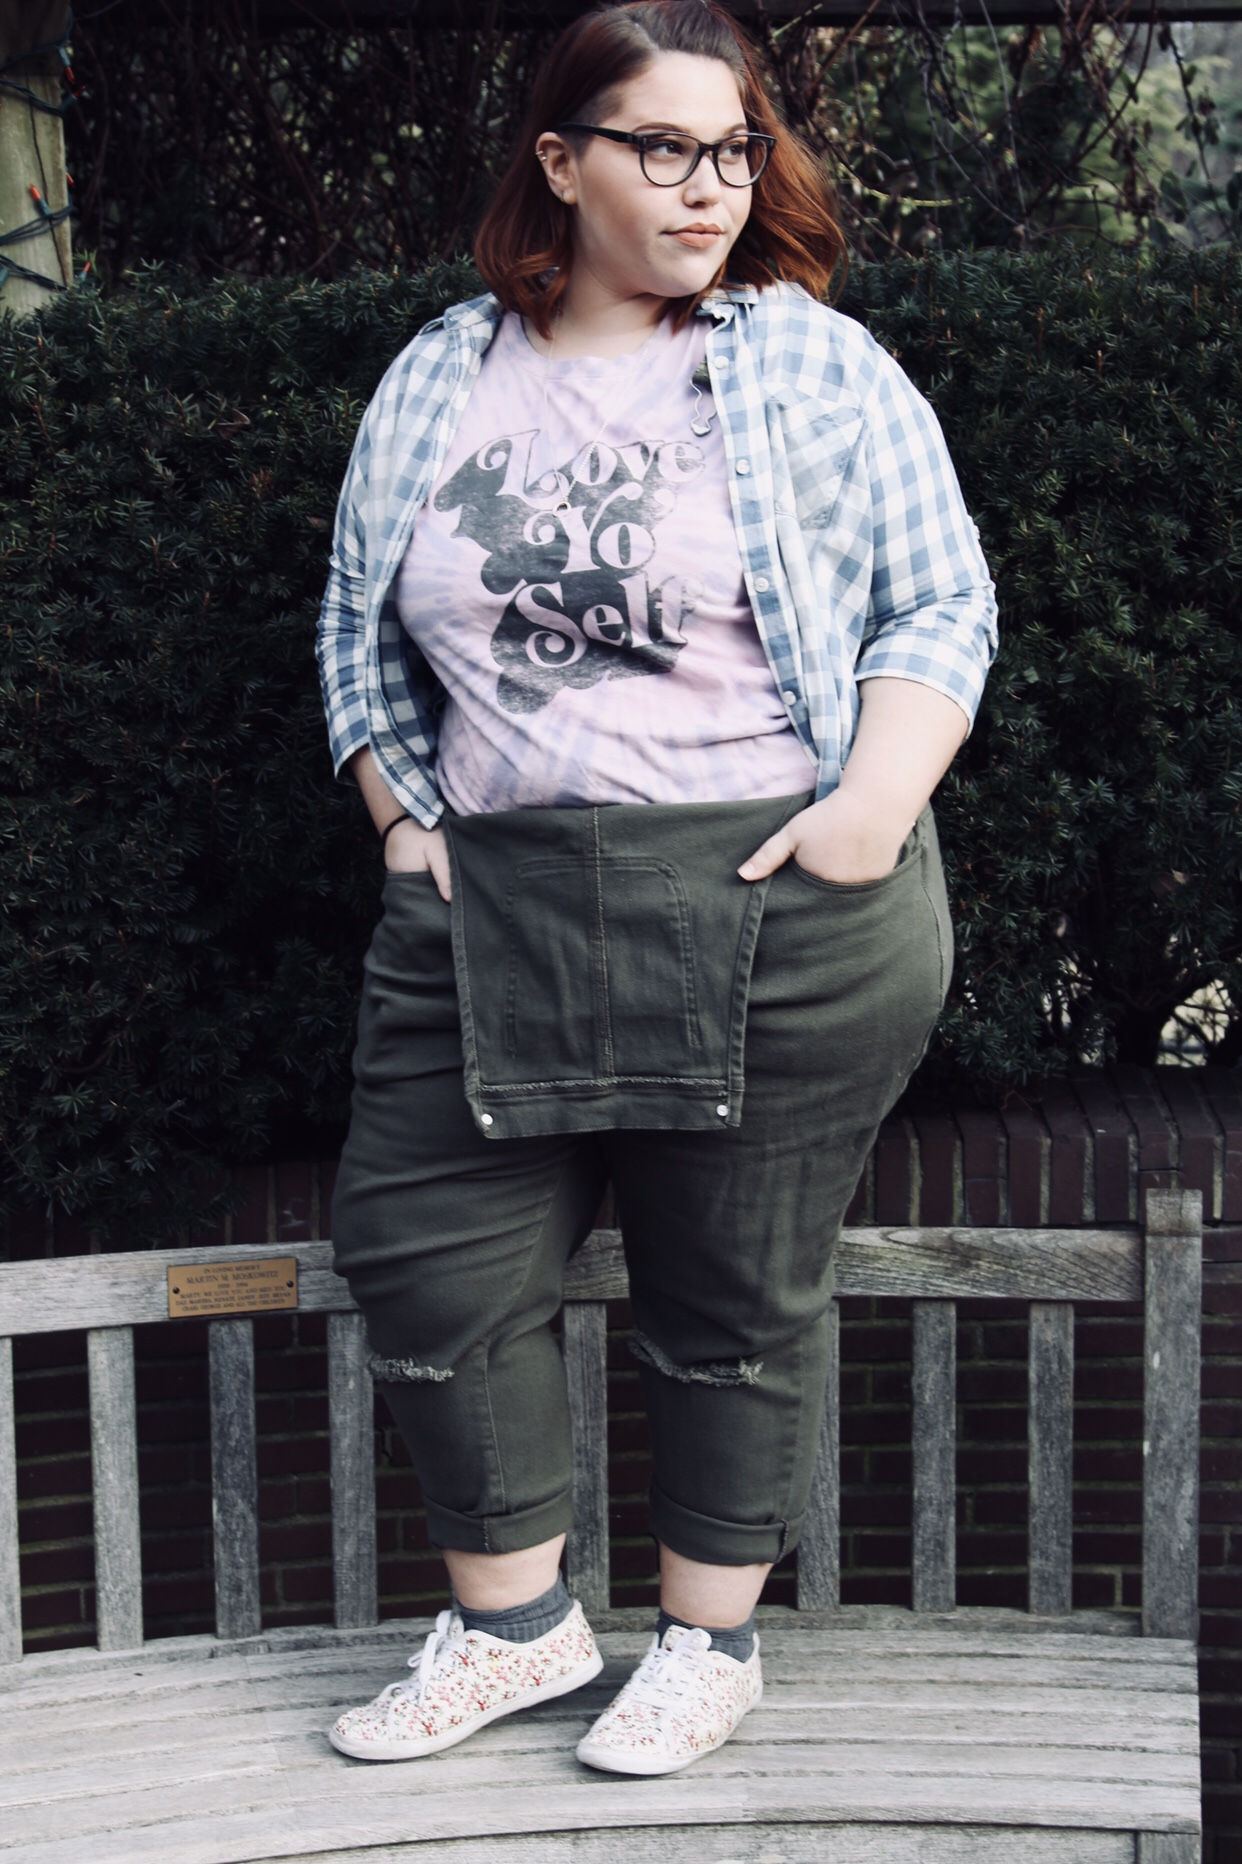 """Femme-presenting plus size women with red shoulder-length hair and black glasses stands on a bench with her hands in her pockets. She is wearing a light purple t-shirt with the phrase """"Love Yo Self"""" on it, a blue and white gingham button up worn open, olive green overalls that aren't suspended, and floral sneakers."""